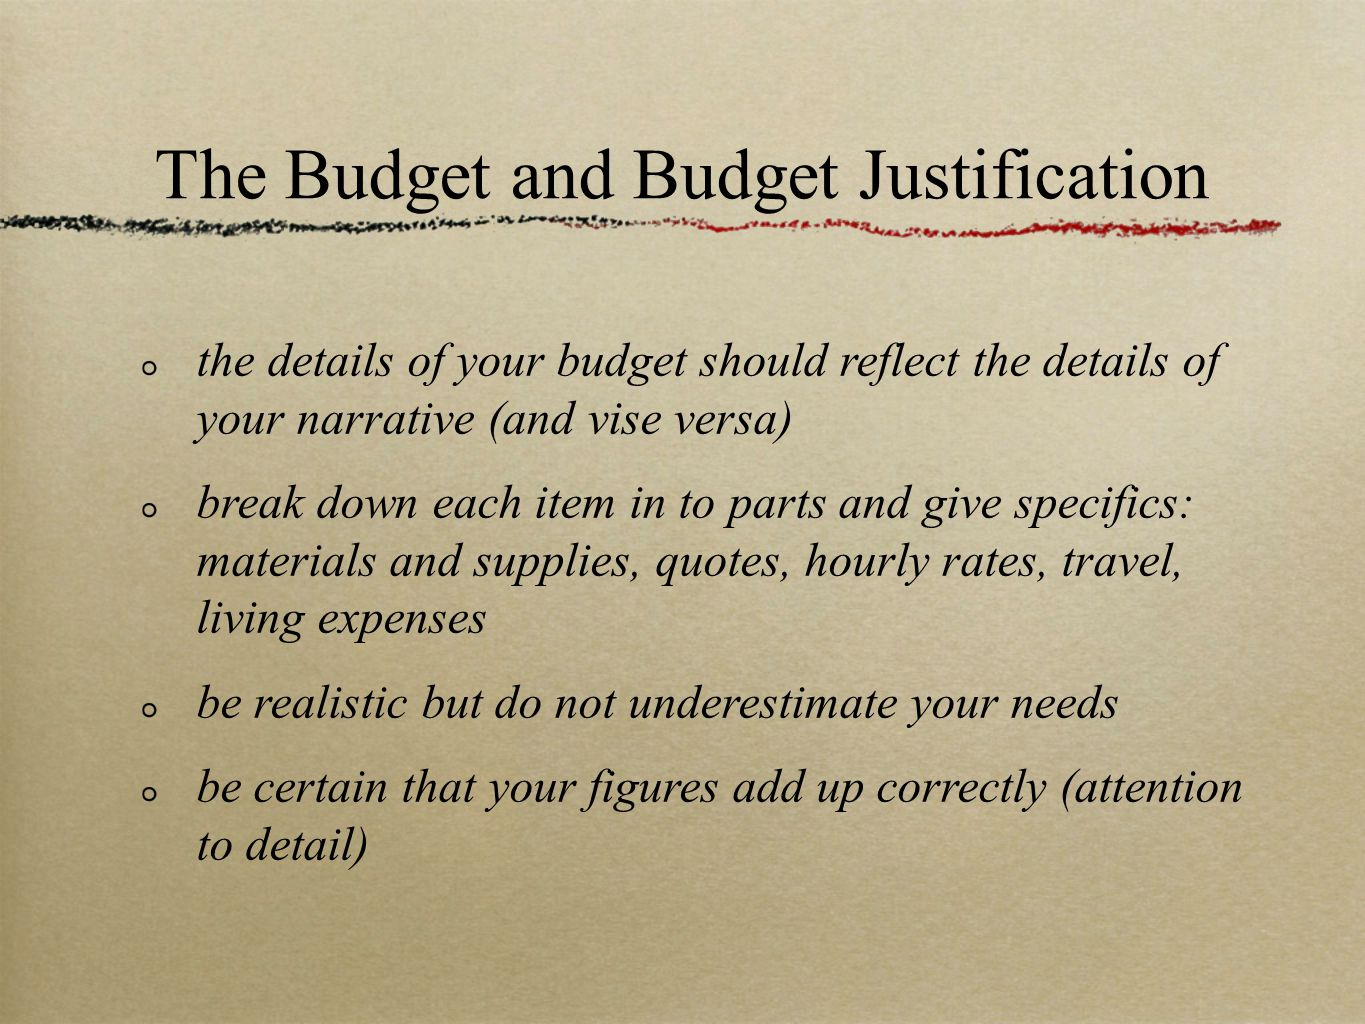 The Budget and Budget Justification the details of your budget should reflect the details of your narrative (and vise versa) break down each item in to parts and give specifics: materials and supplies, quotes, hourly rates, travel, living expenses be realistic but do not underestimate your needs be certain that your figures add up correctly (attention to detail)